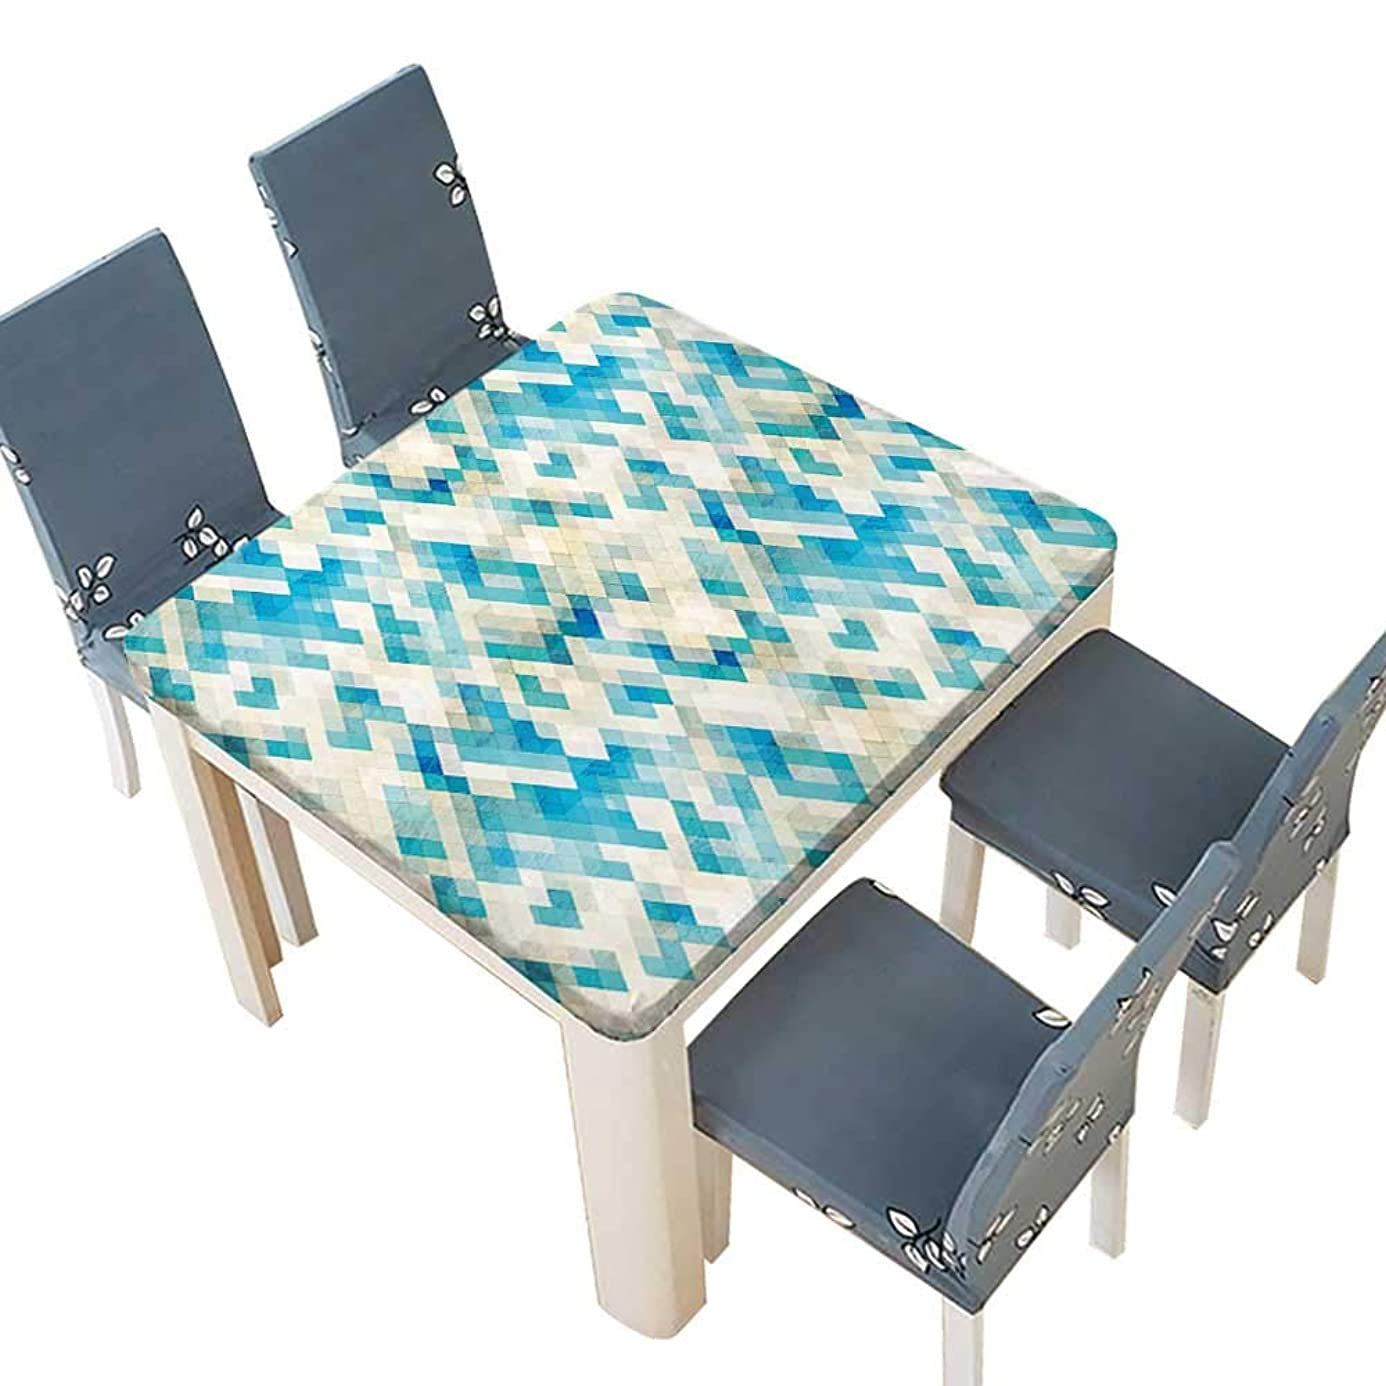 PINAFORE Tablecloth Waterproof Polyester Table Themed Hexagonal Shaped Abstract Modern Grunge Art Print White Cream Blue Turquoise Tablecloth Wedding/Party 41 x 41 INCH (Elastic Edge) xjj8627298